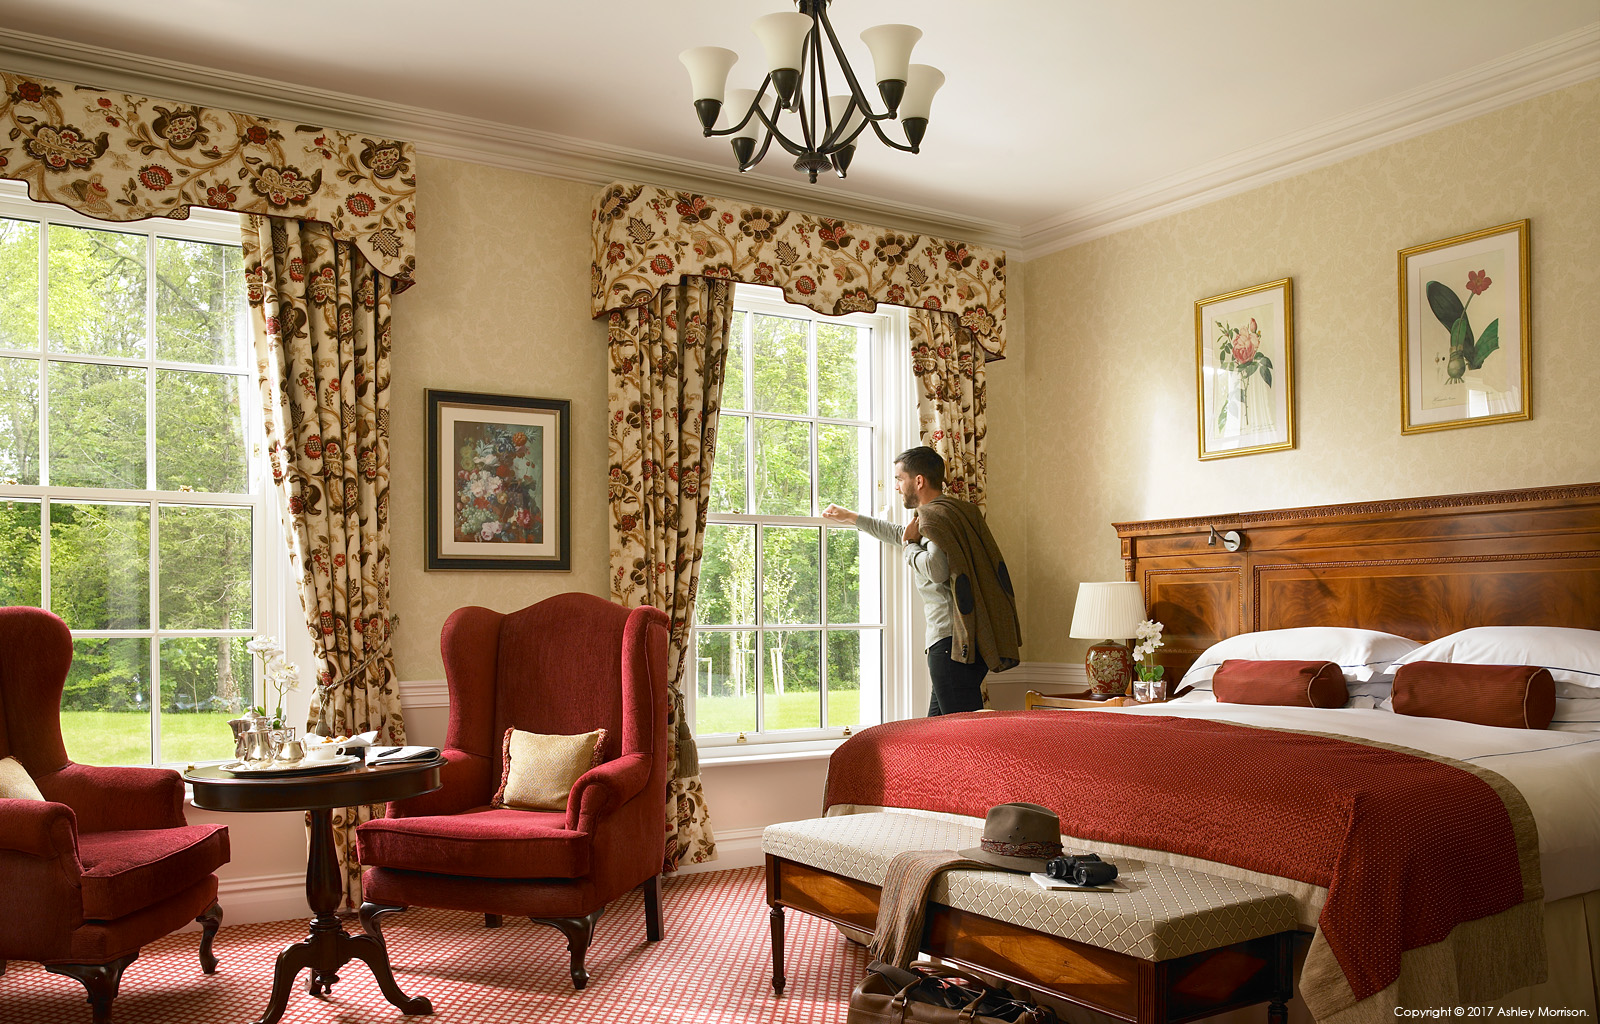 The Liffey Deluxe Woodland View bedroom at the Kildare Hotel, Spa & Country Club in County Kildare.